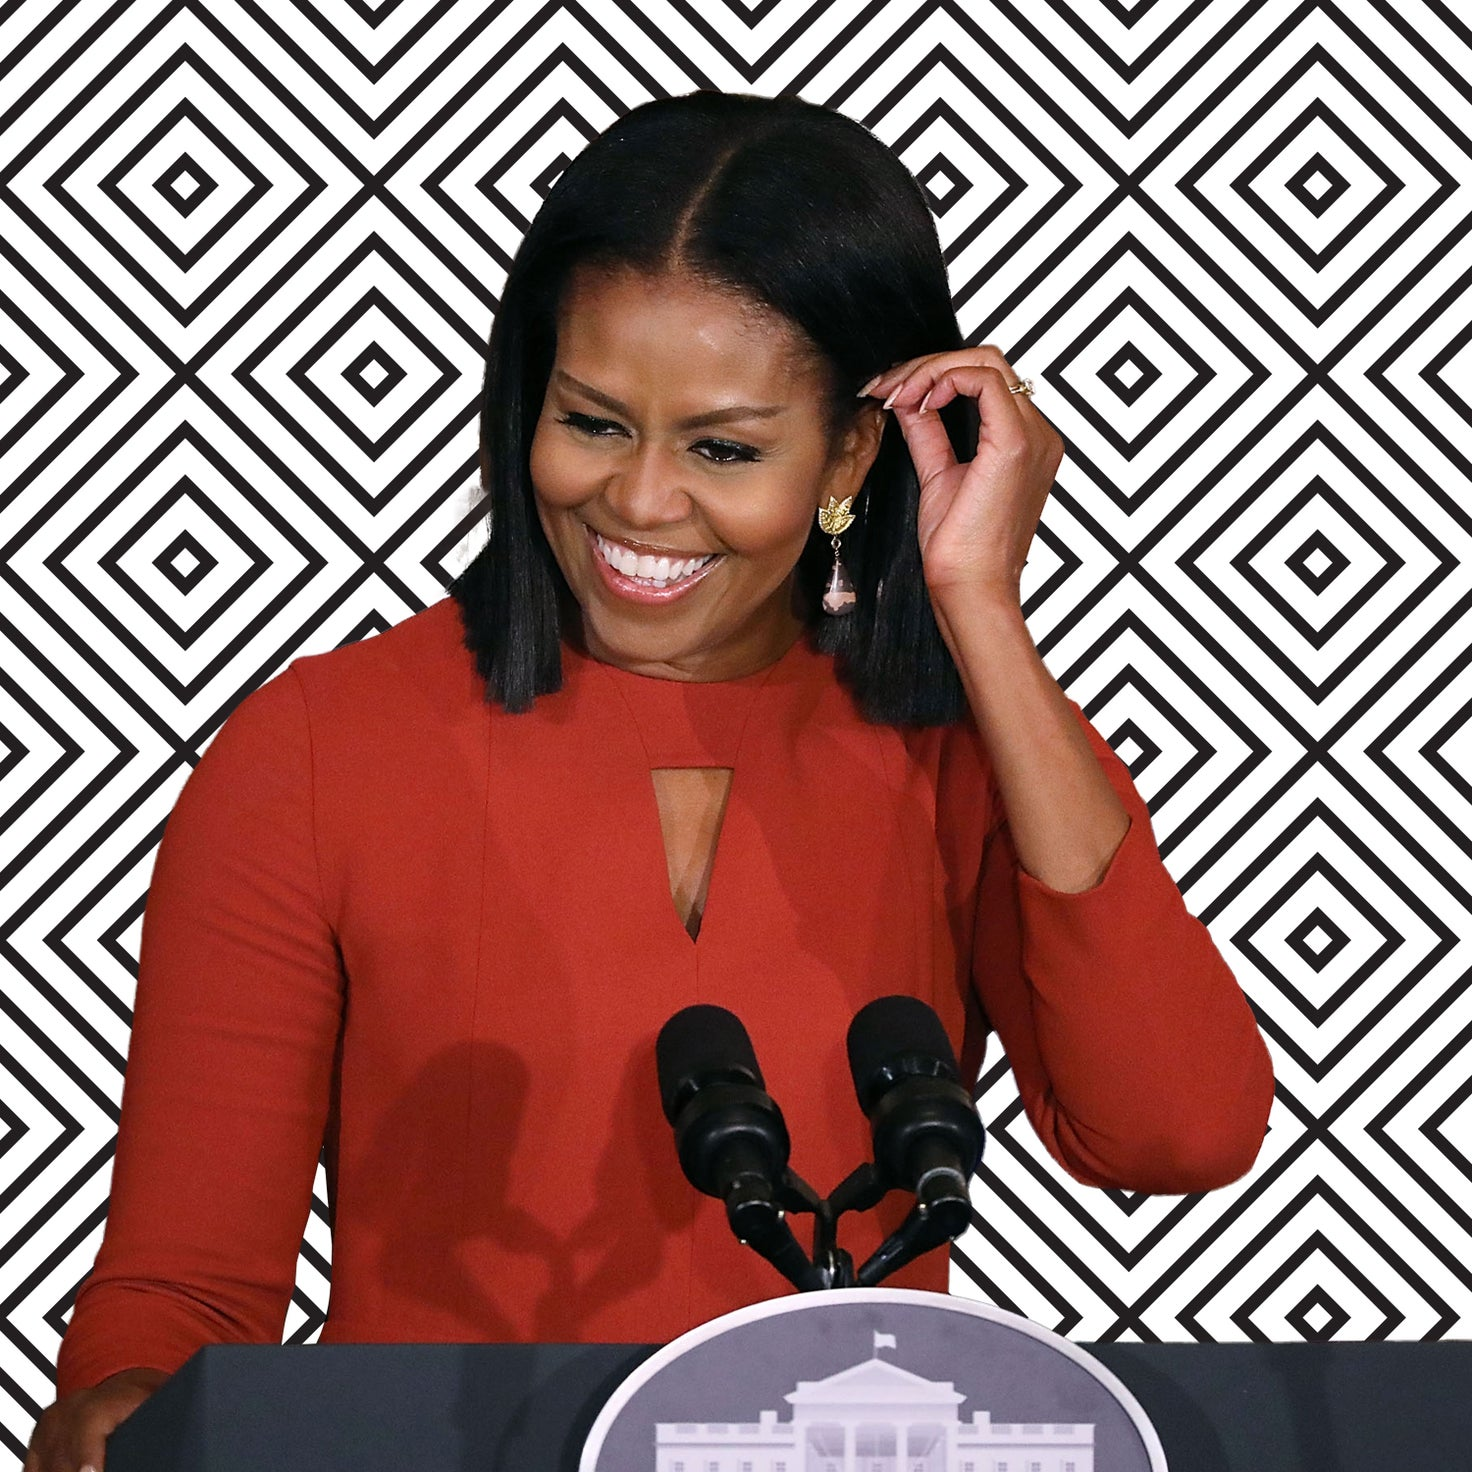 50+ Reasons We Love Michelle Obama